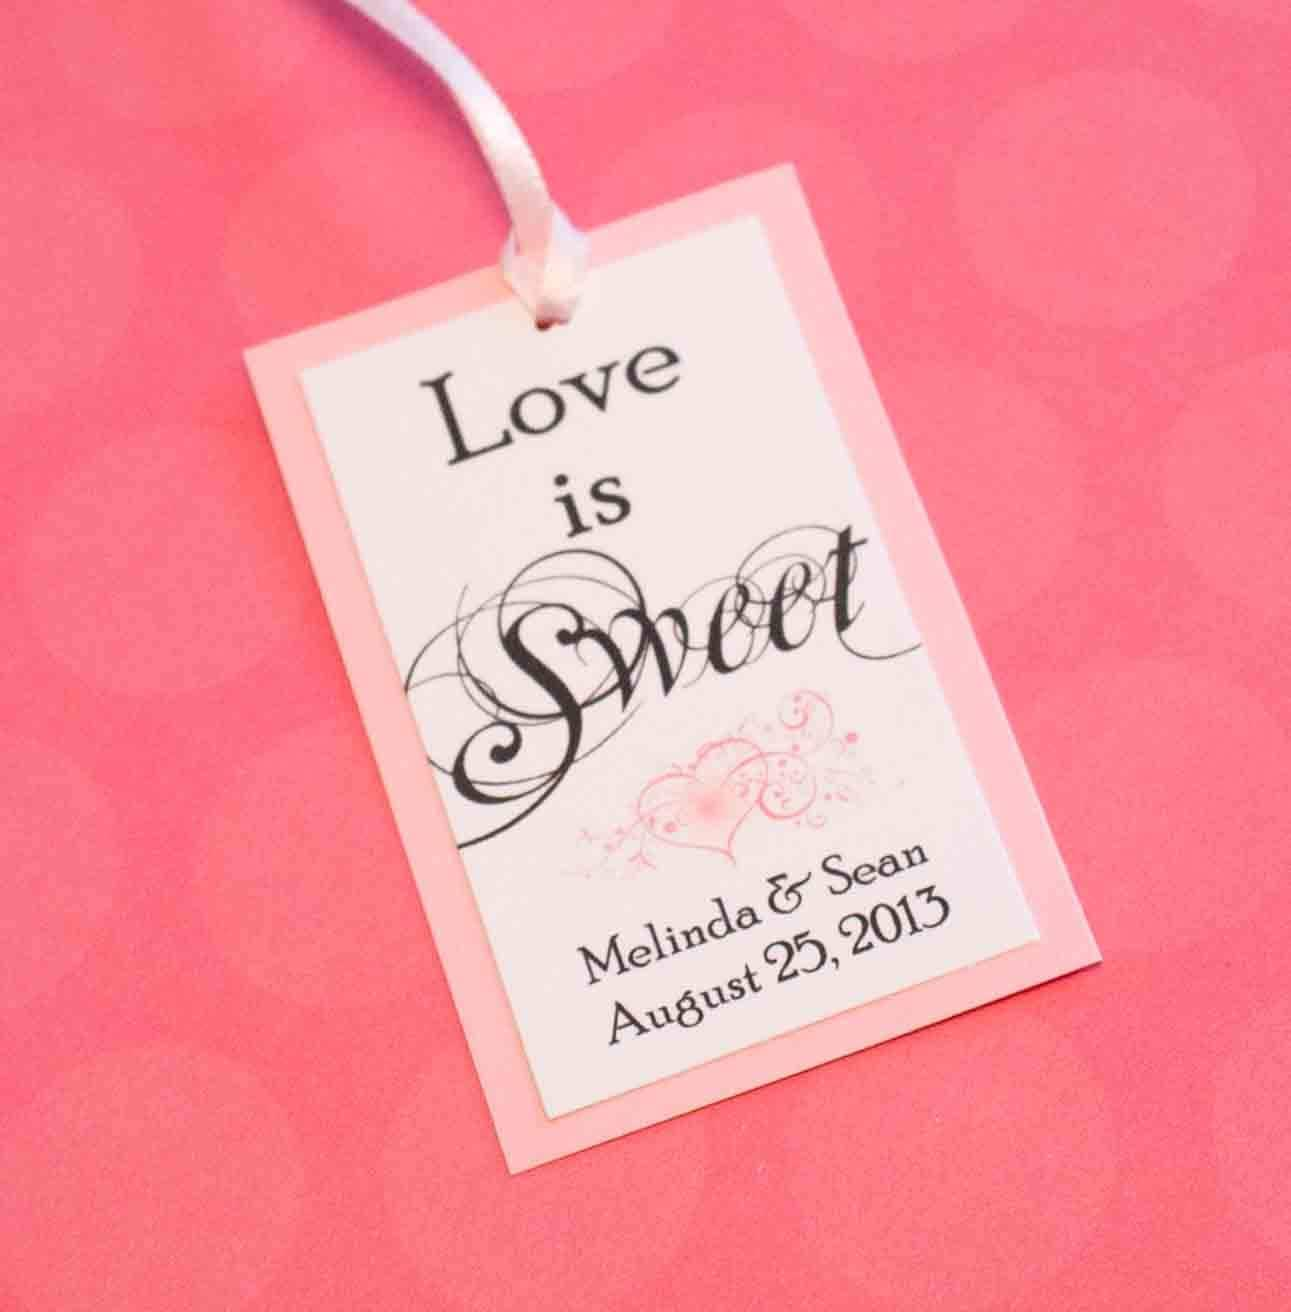 Personalised Wedding Gift Tags : ... Custom - Love is Sweet - Wedding Favor Tags, Personalized gift tags on